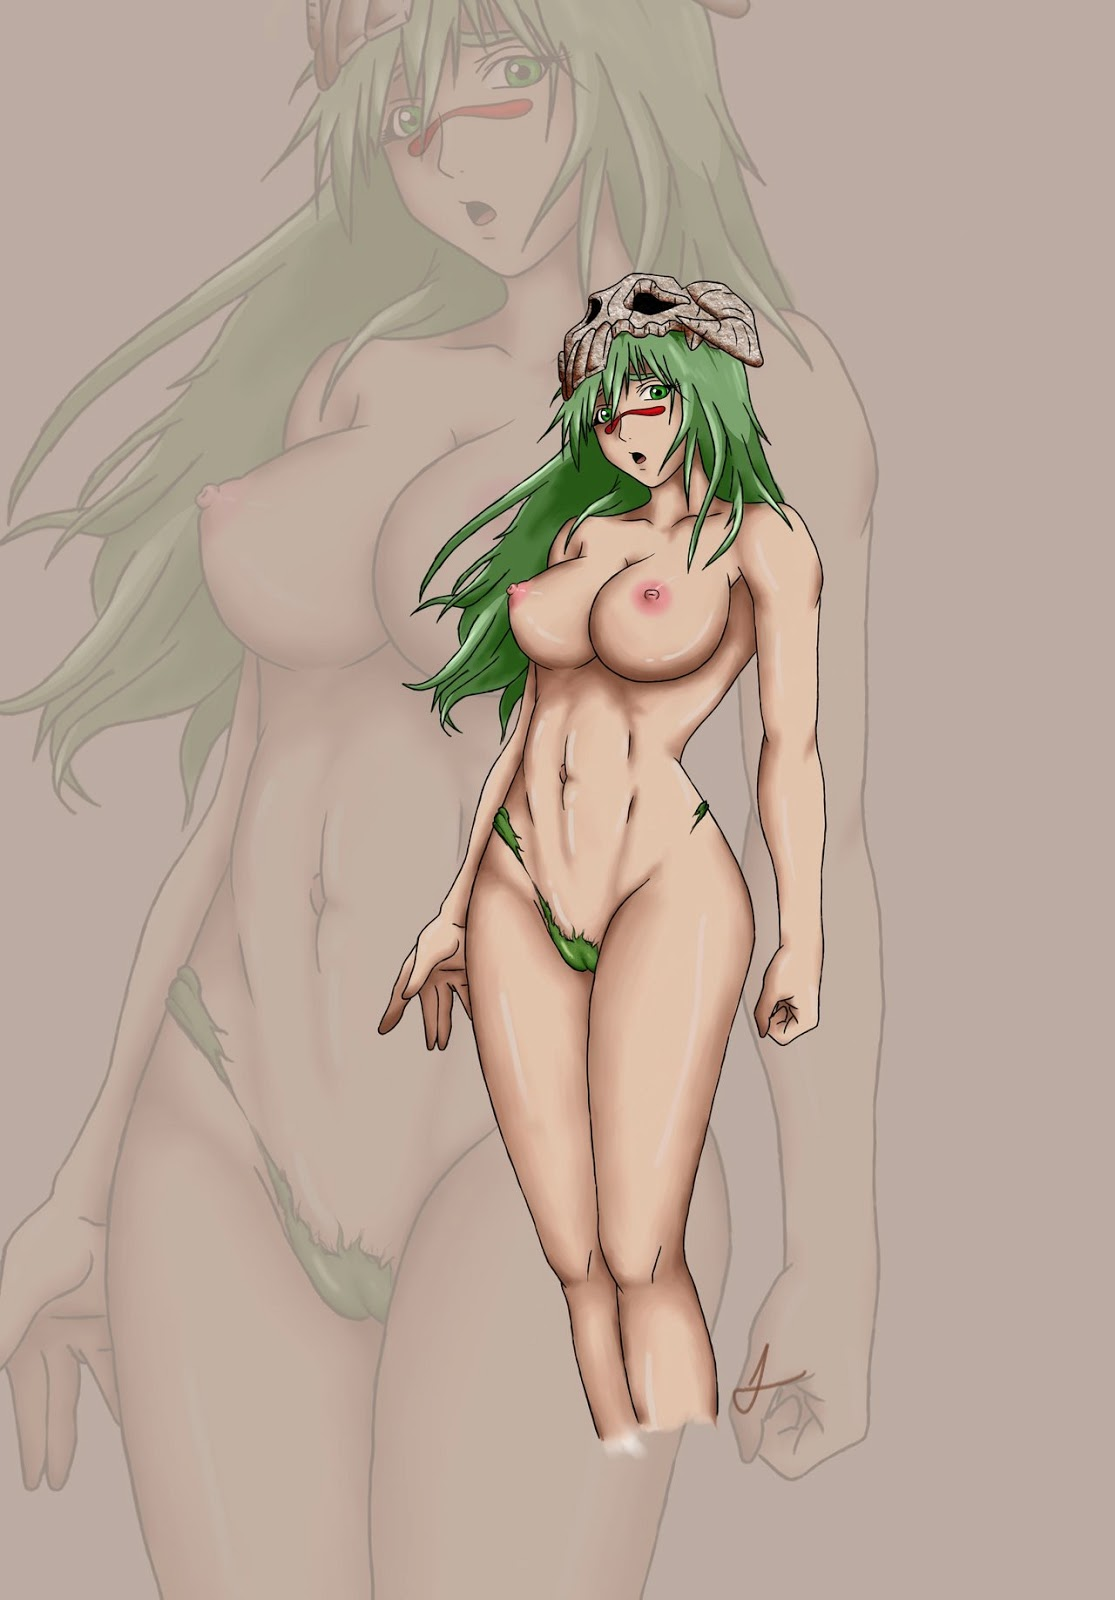 Koleksi Hentai Bleach Anime Girls (part 2) ~ Foto Cewek ...